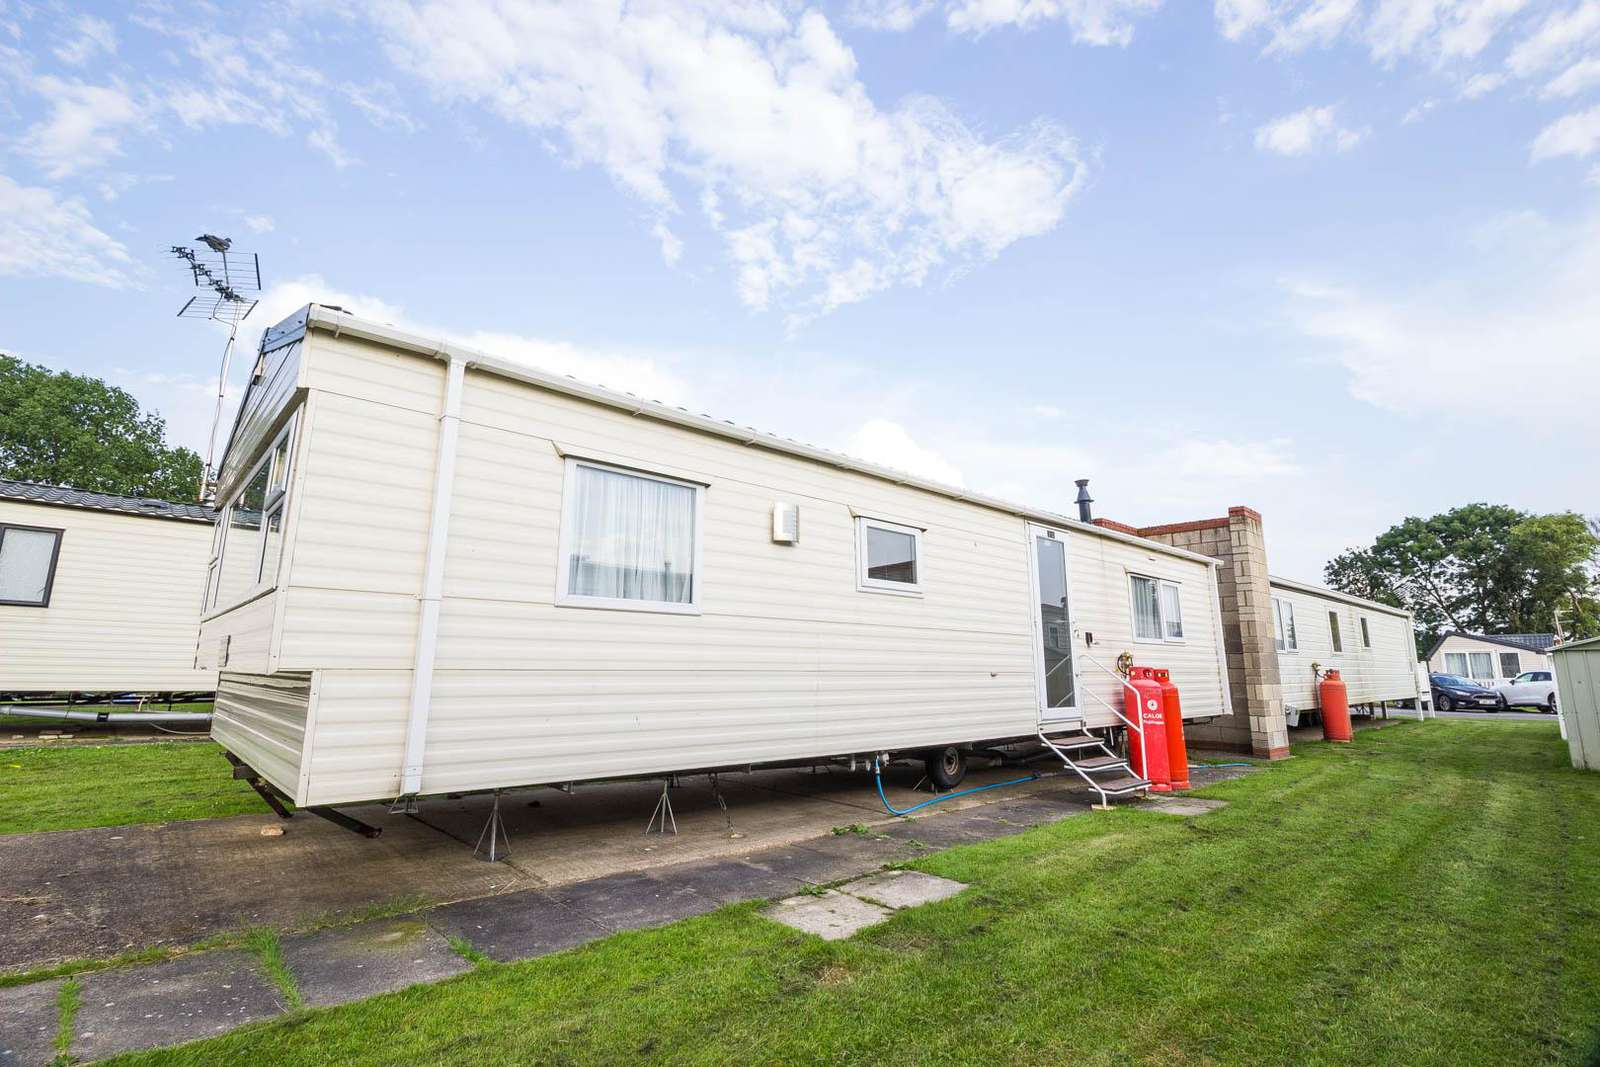 17031P – Poplars Way area, 2 bed, 6 berth caravan with D/G & C/H. Ruby rated. - property